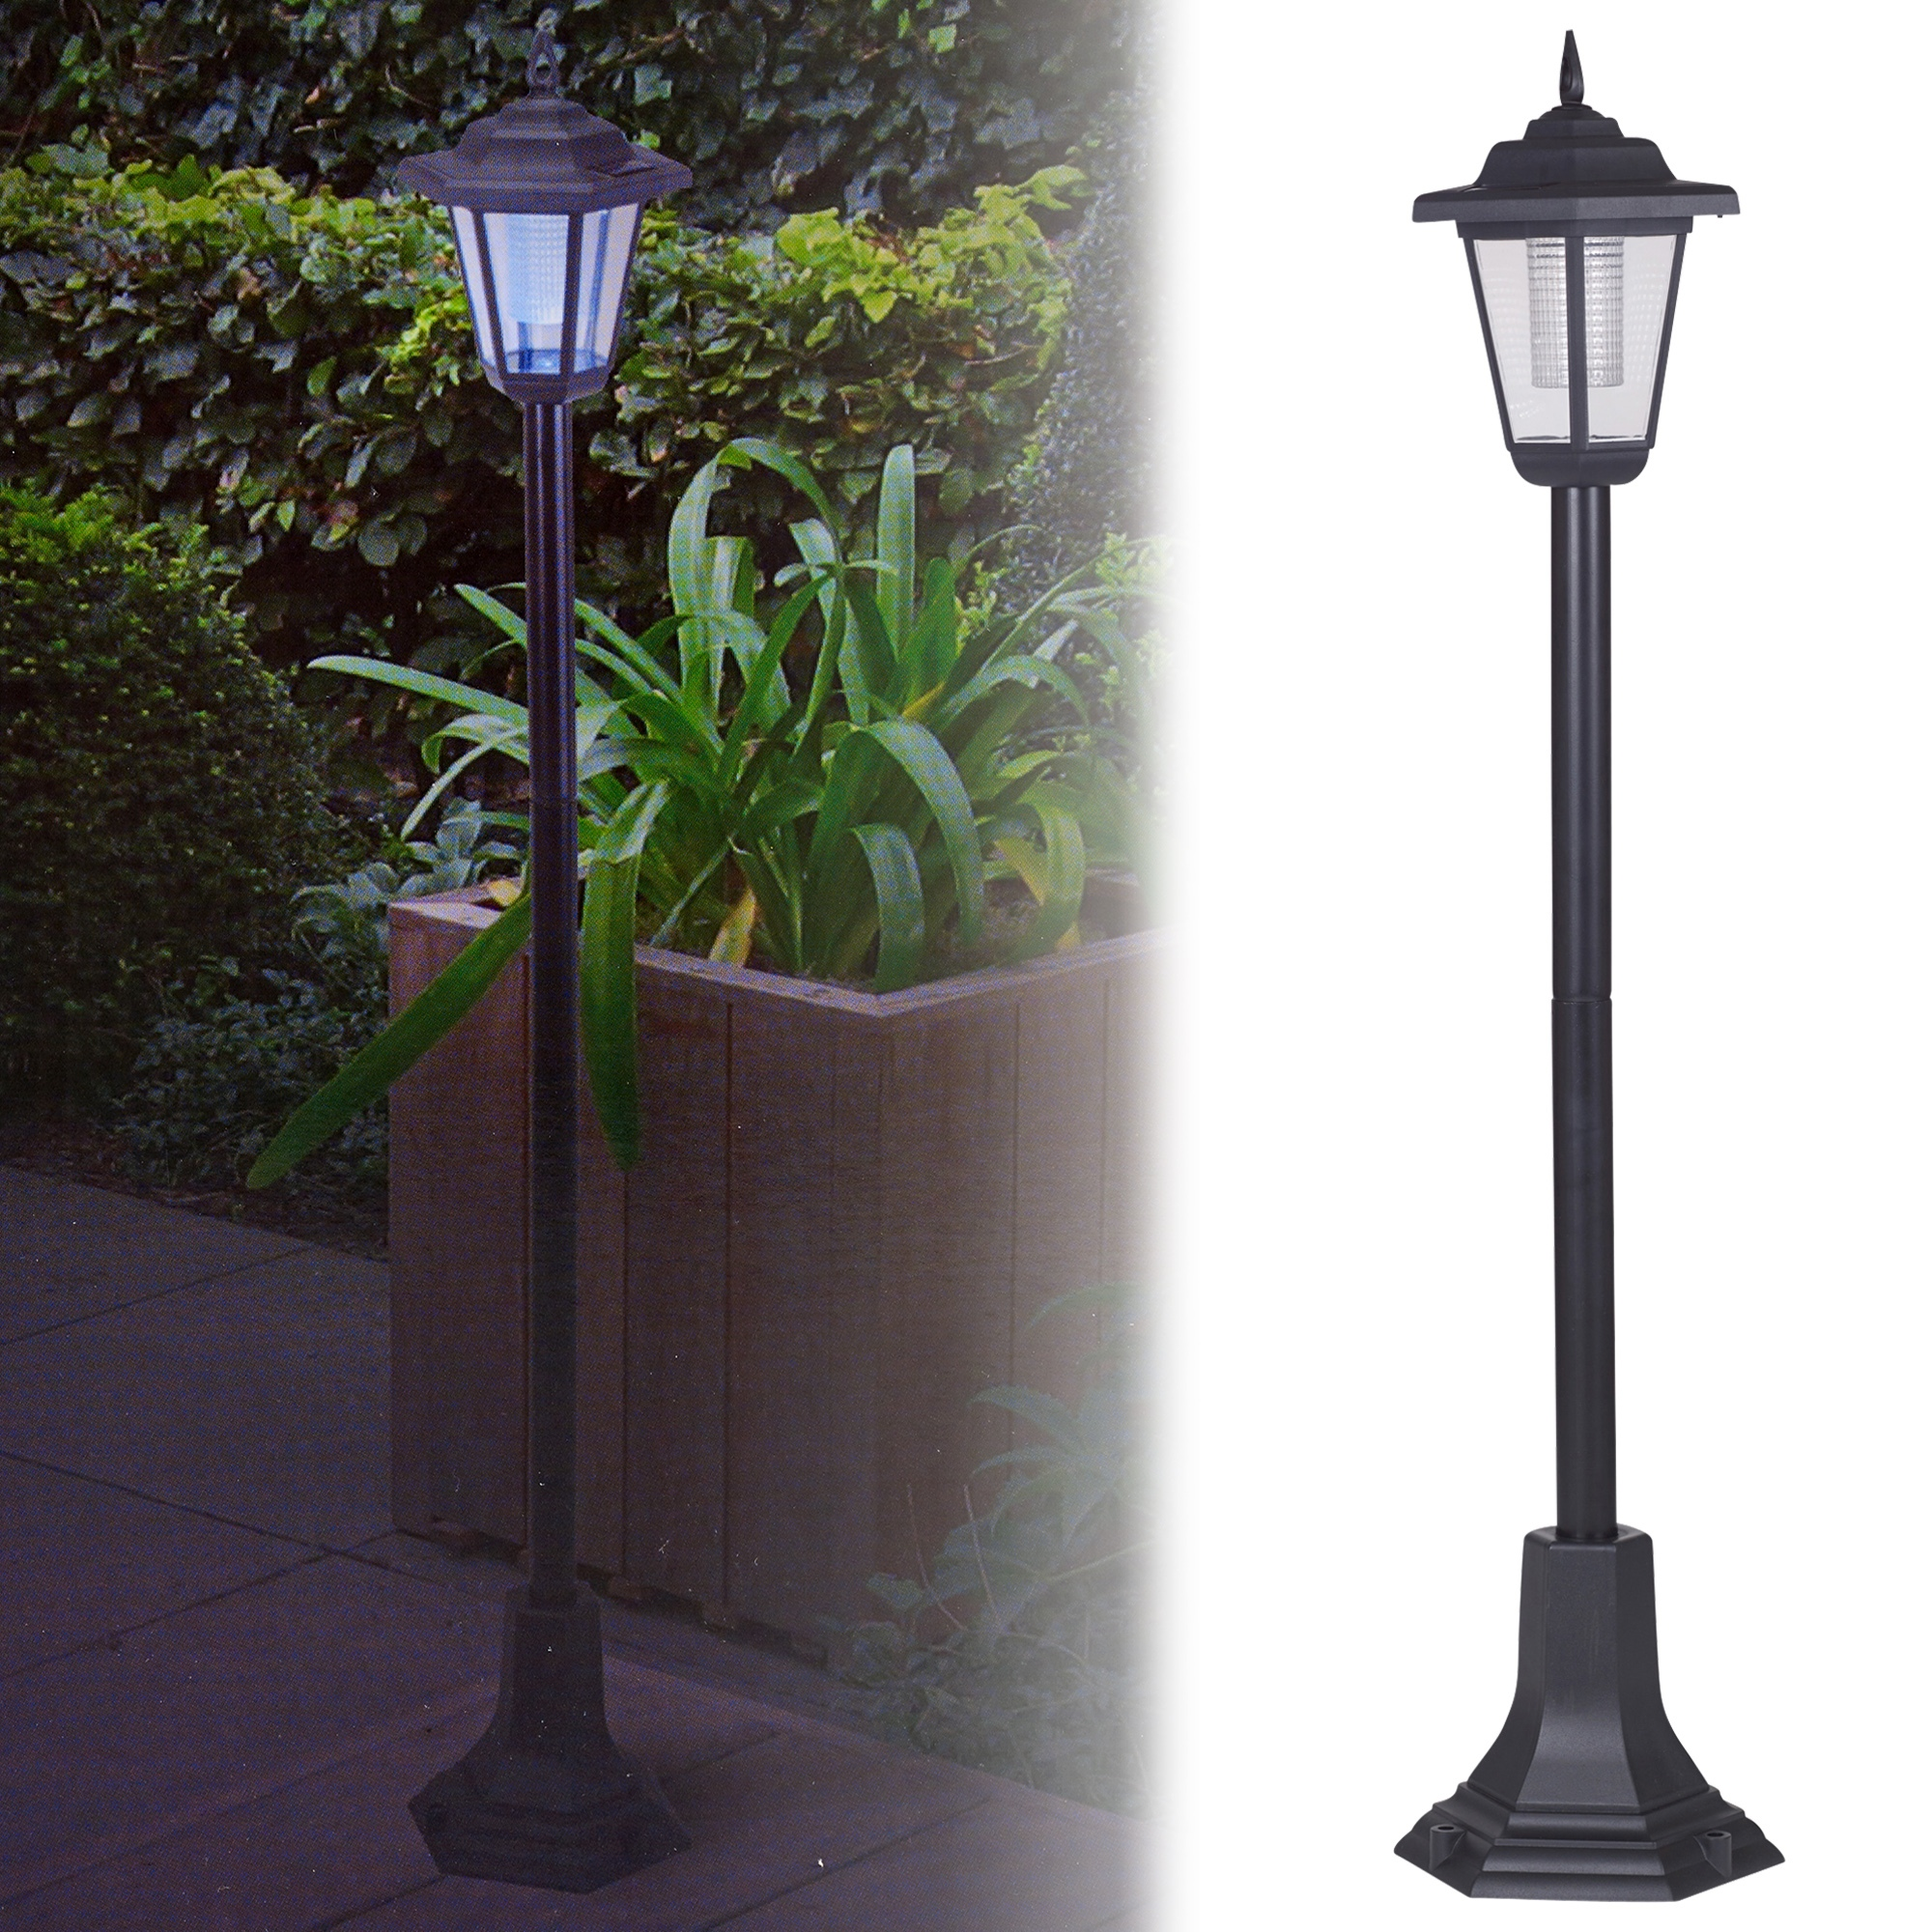 Solar powered garden lights lantern lamp black led pathway driveway outdoor post ebay for Solar exterior post lantern light